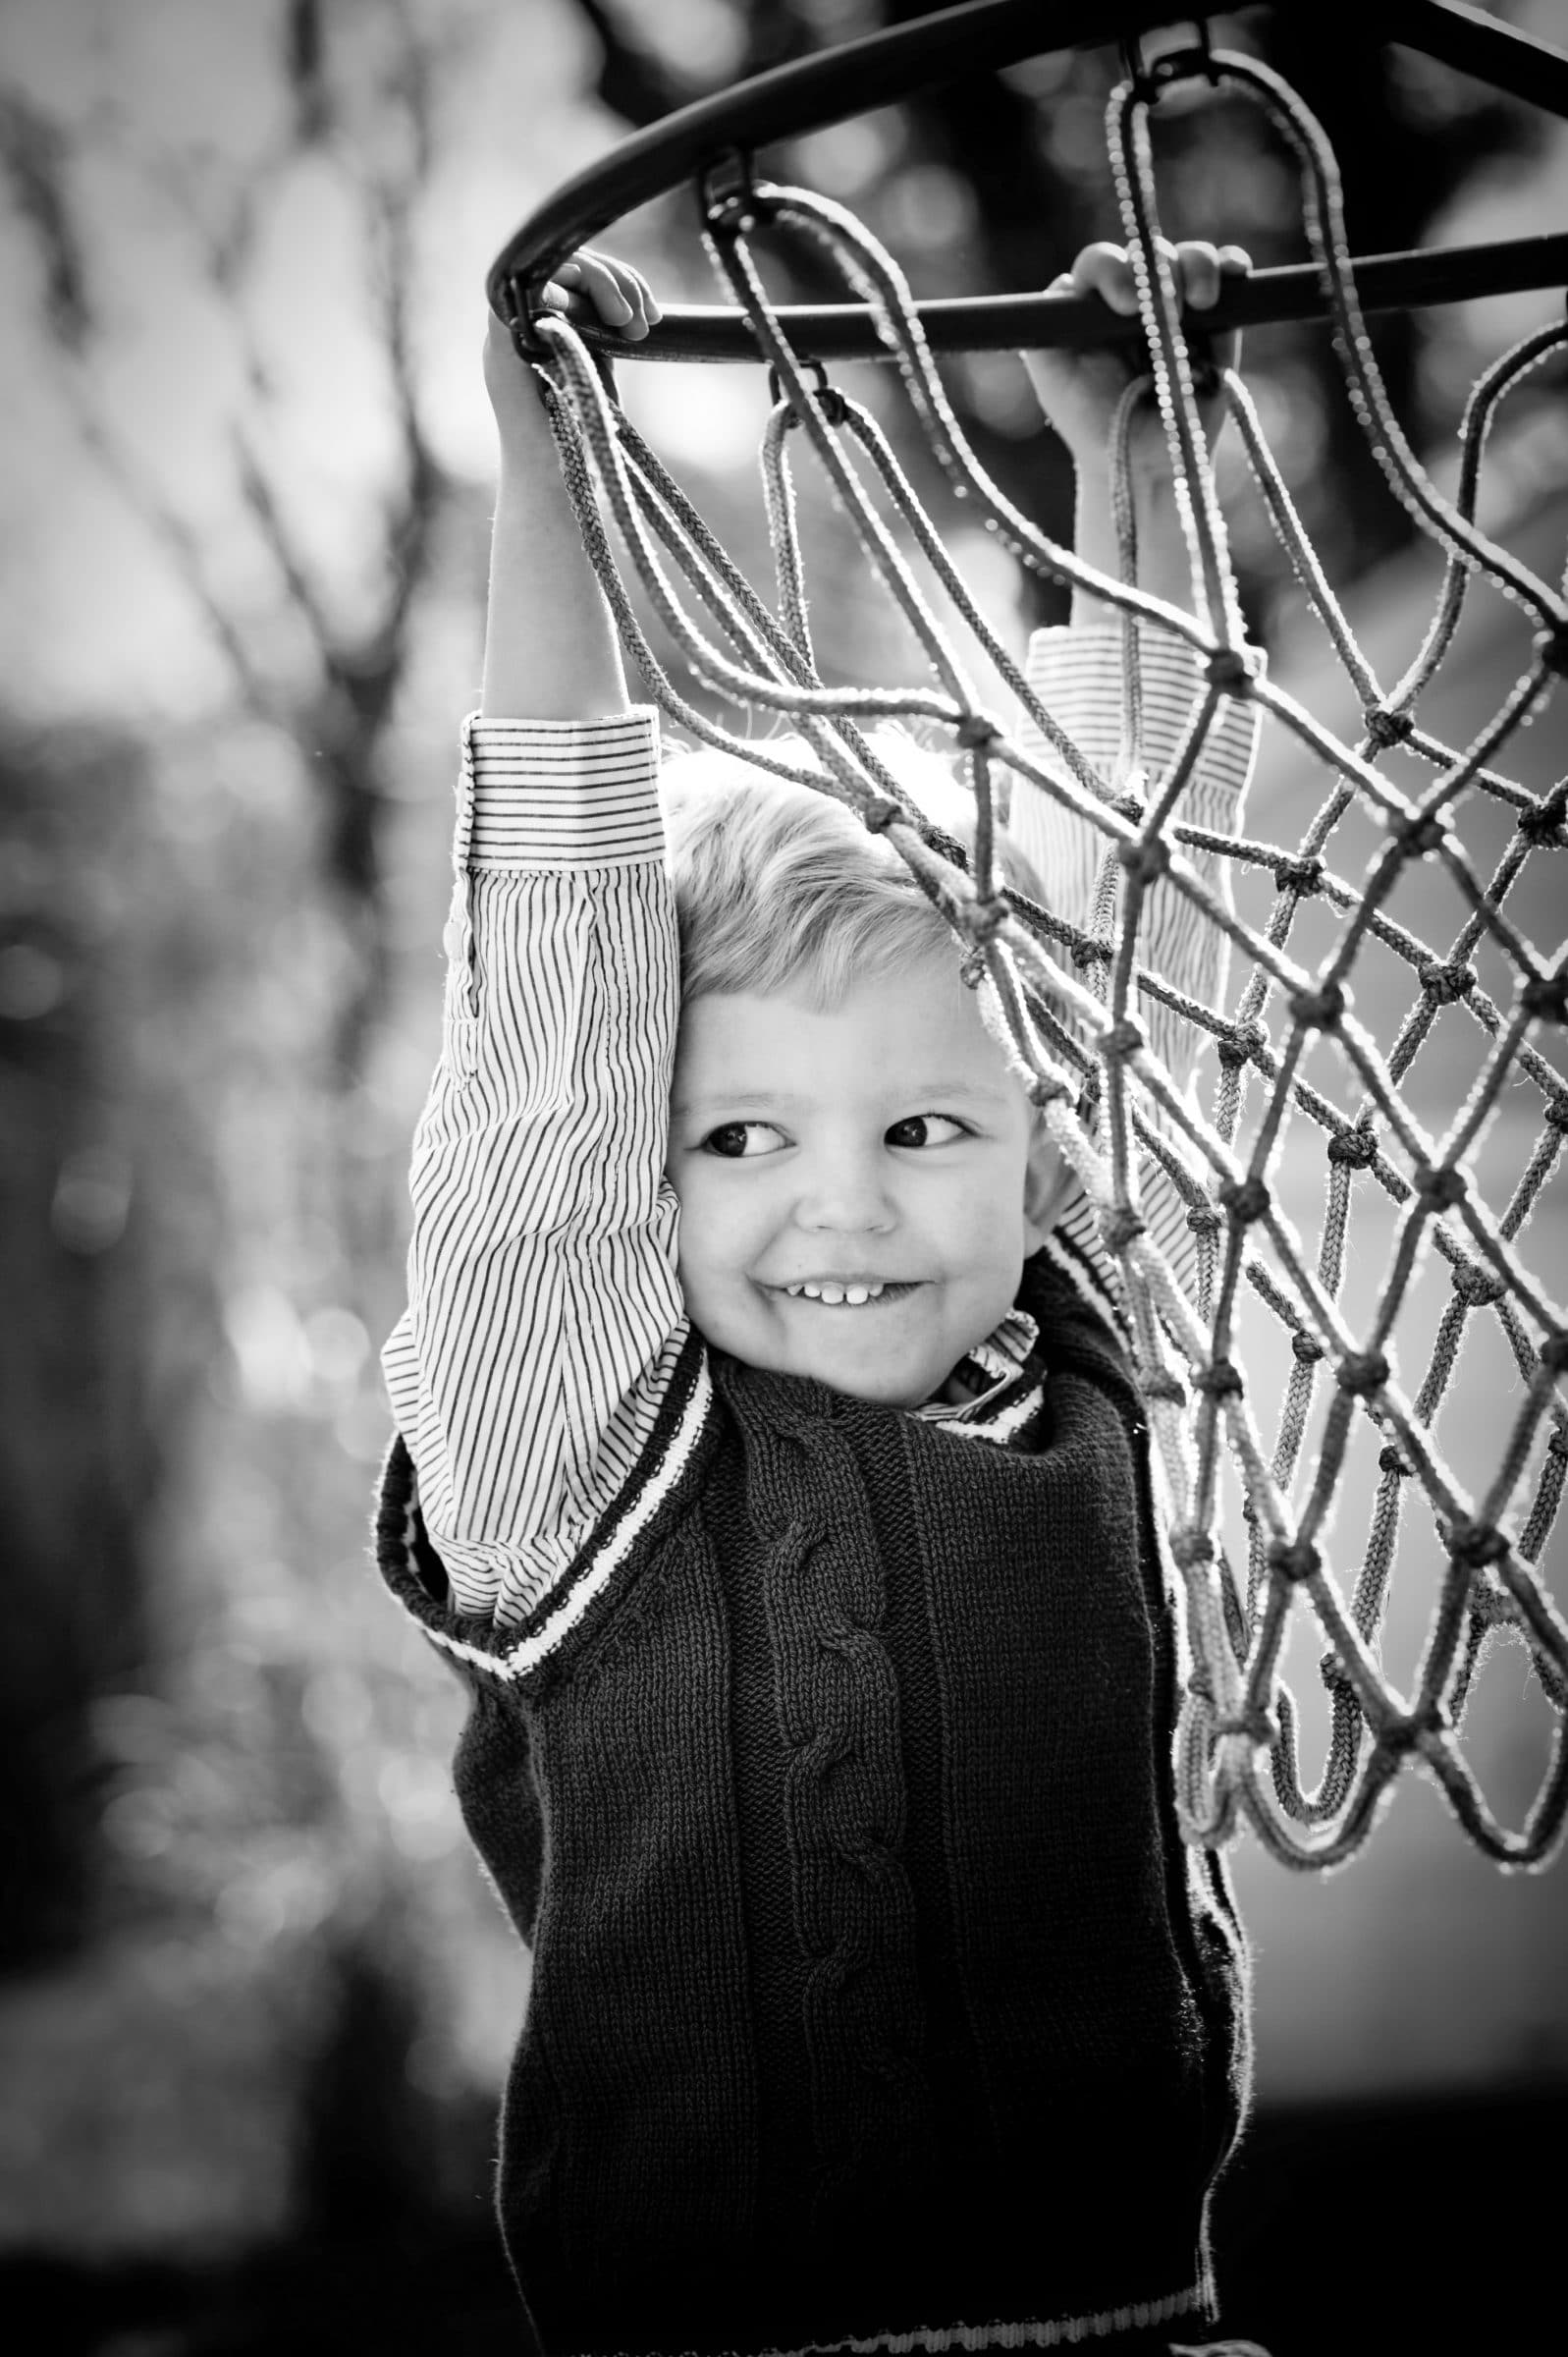 boy hanging from basketball net